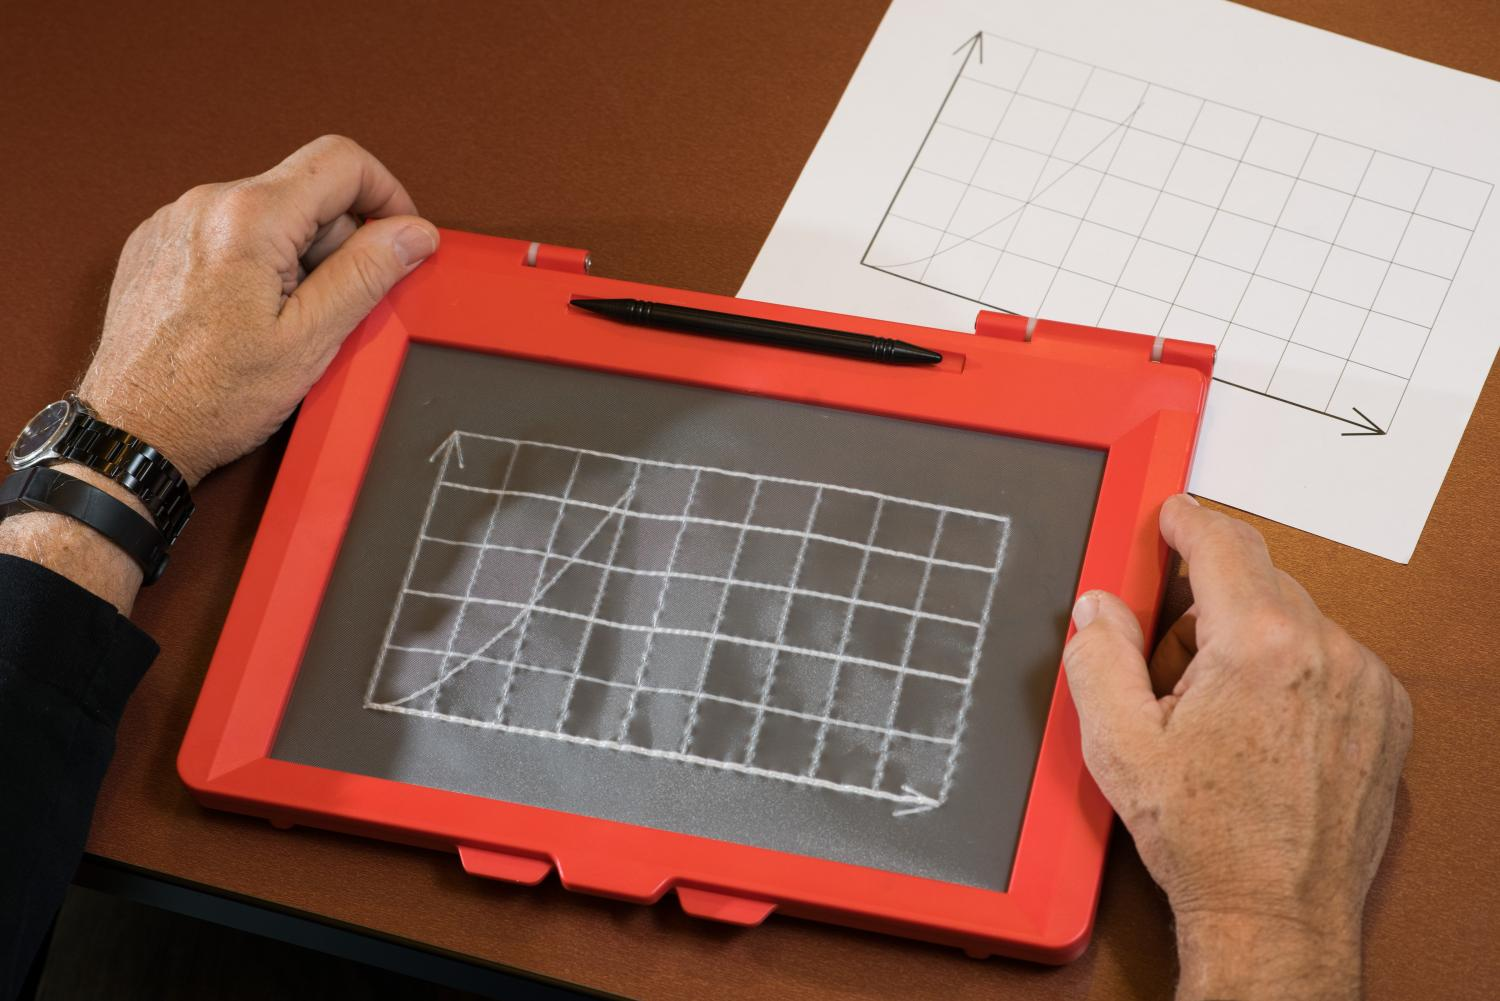 Teaching the blind to draw—and do STEM